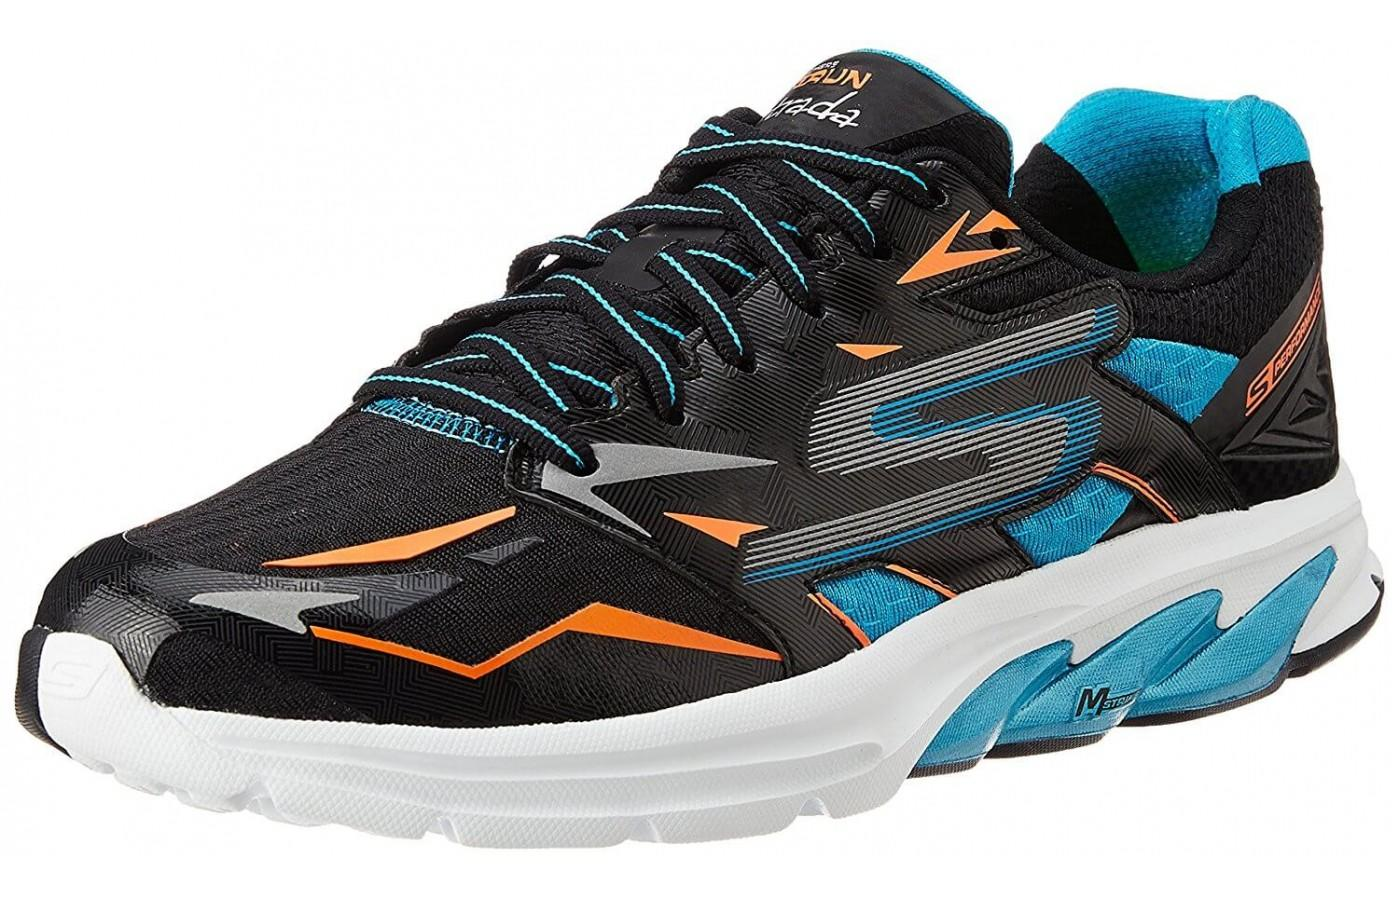 6d6184f0 Skechers GOrun Strada Review - Buy or Not in July 2019?